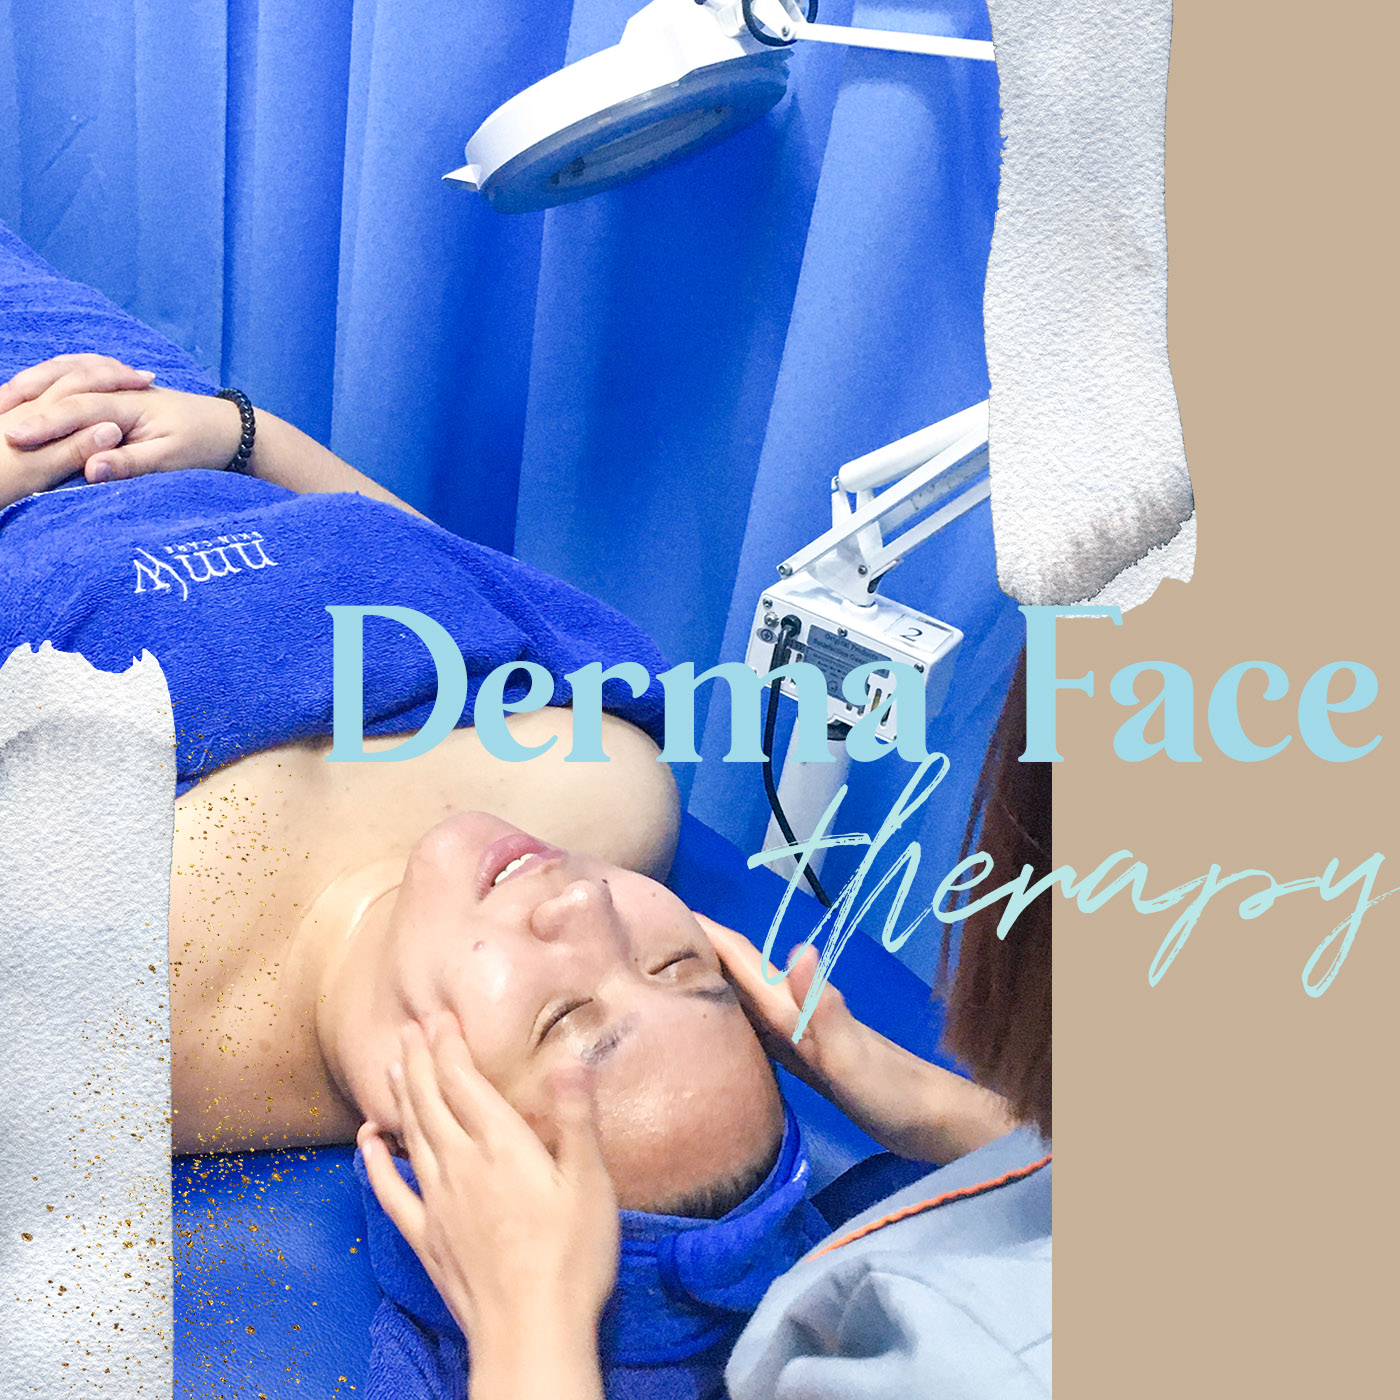 treatment Derma Face Therapy NMW Skin Care Jogja